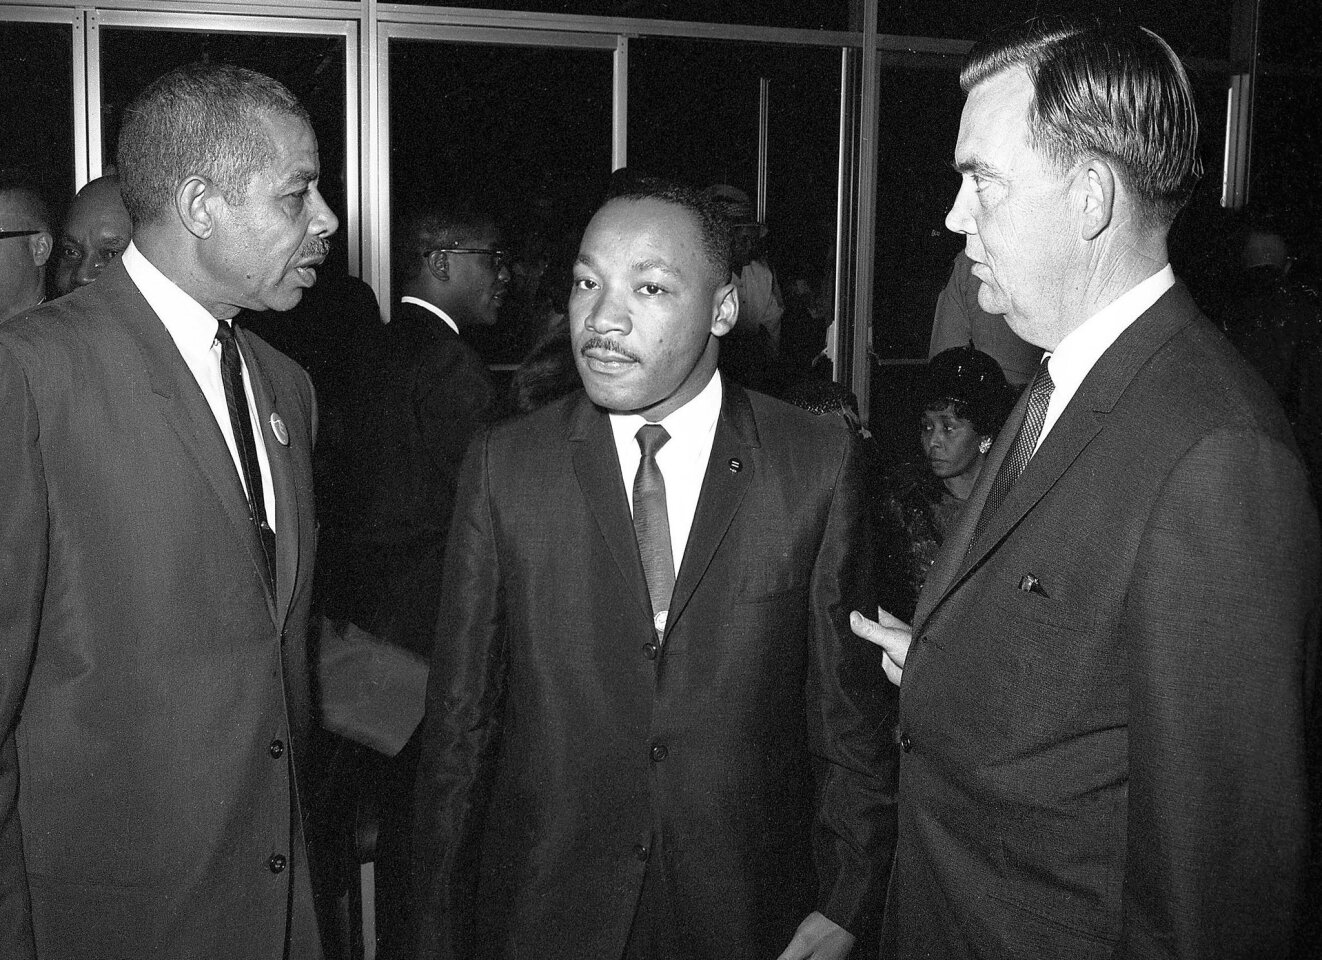 The Rev. Martin Luther King, Jr. brought his campaign for civil rights legislation to two local college campuses in 1964. He spoke to more than 9,000 at California Western University and San Diego State.